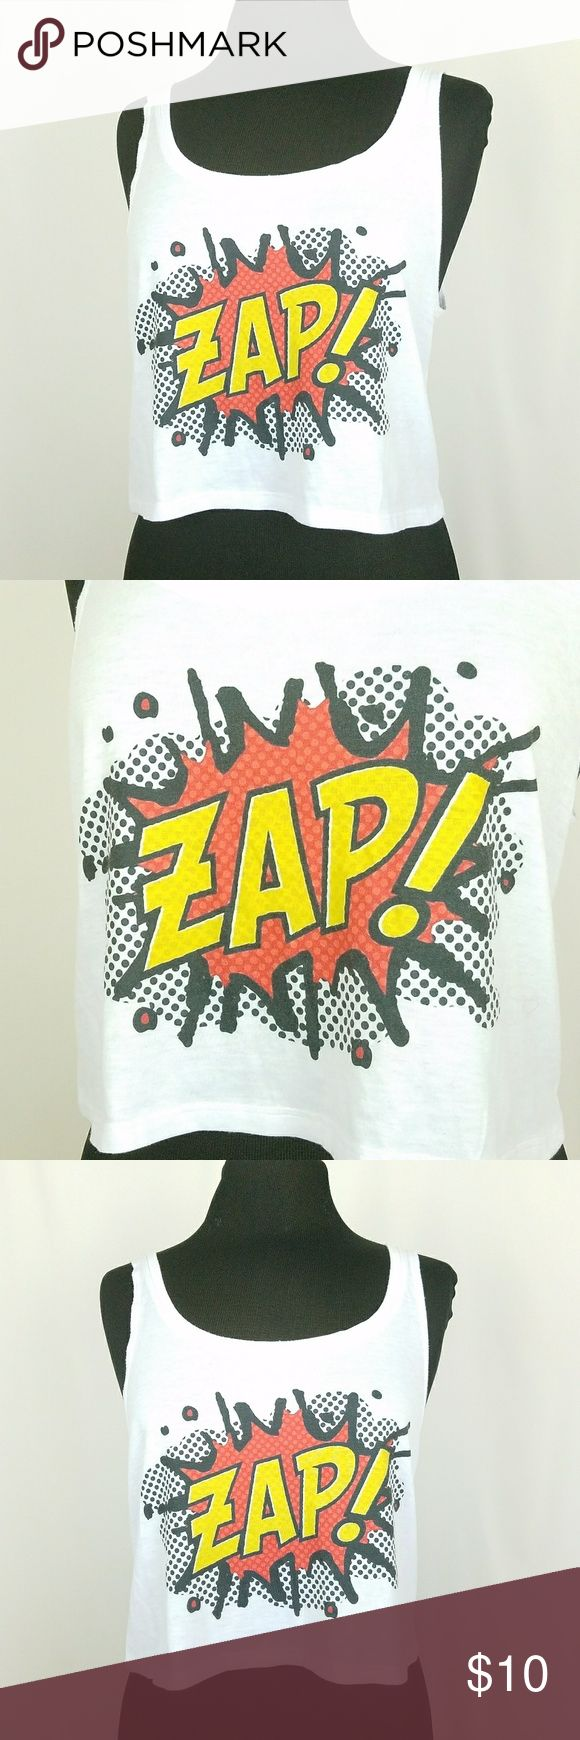 Comic book crop top size small Size small ZAP! Comic book design crop top. Size Small. Good used condition Freshtops Tops Crop Tops